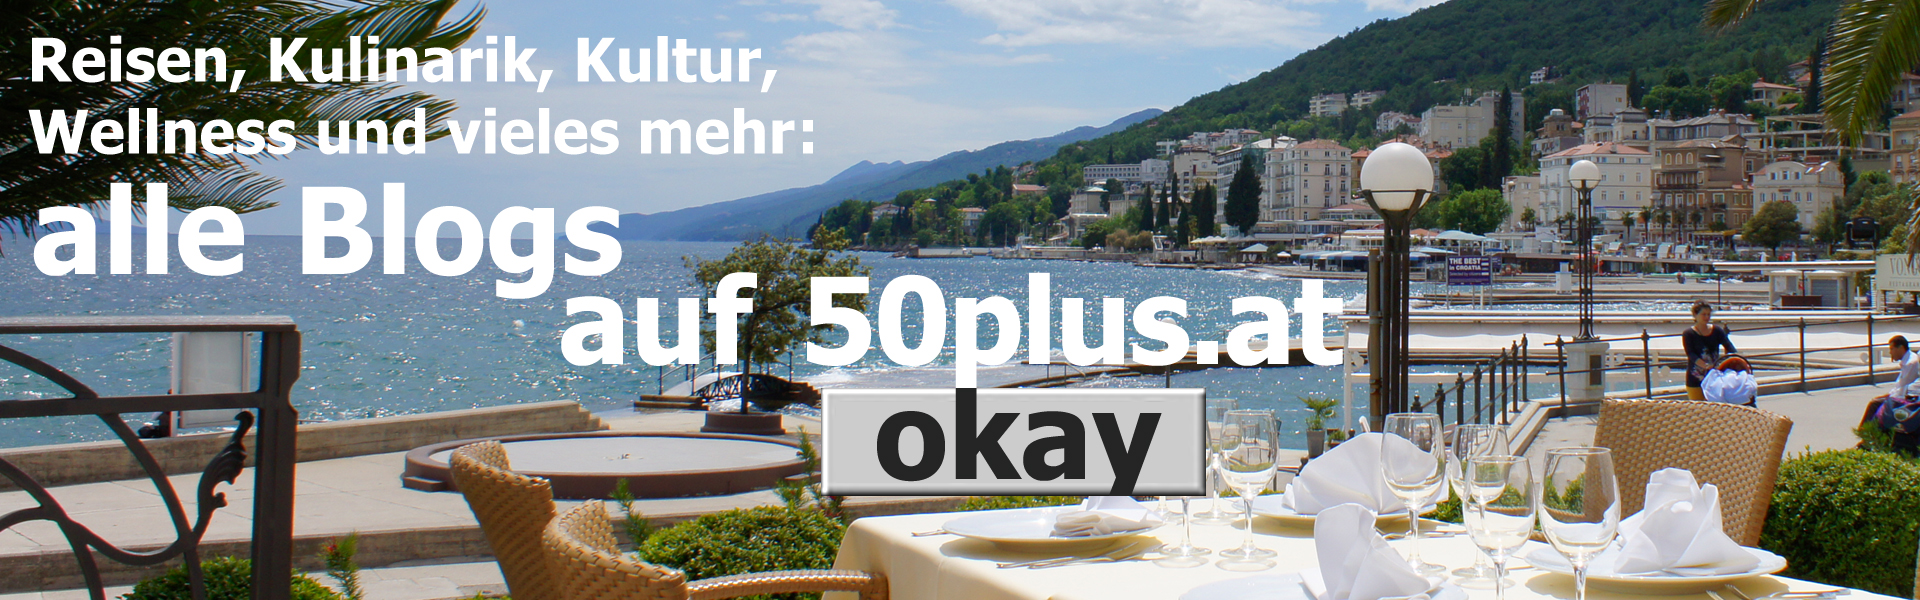 alle Blogs von 50plus.at